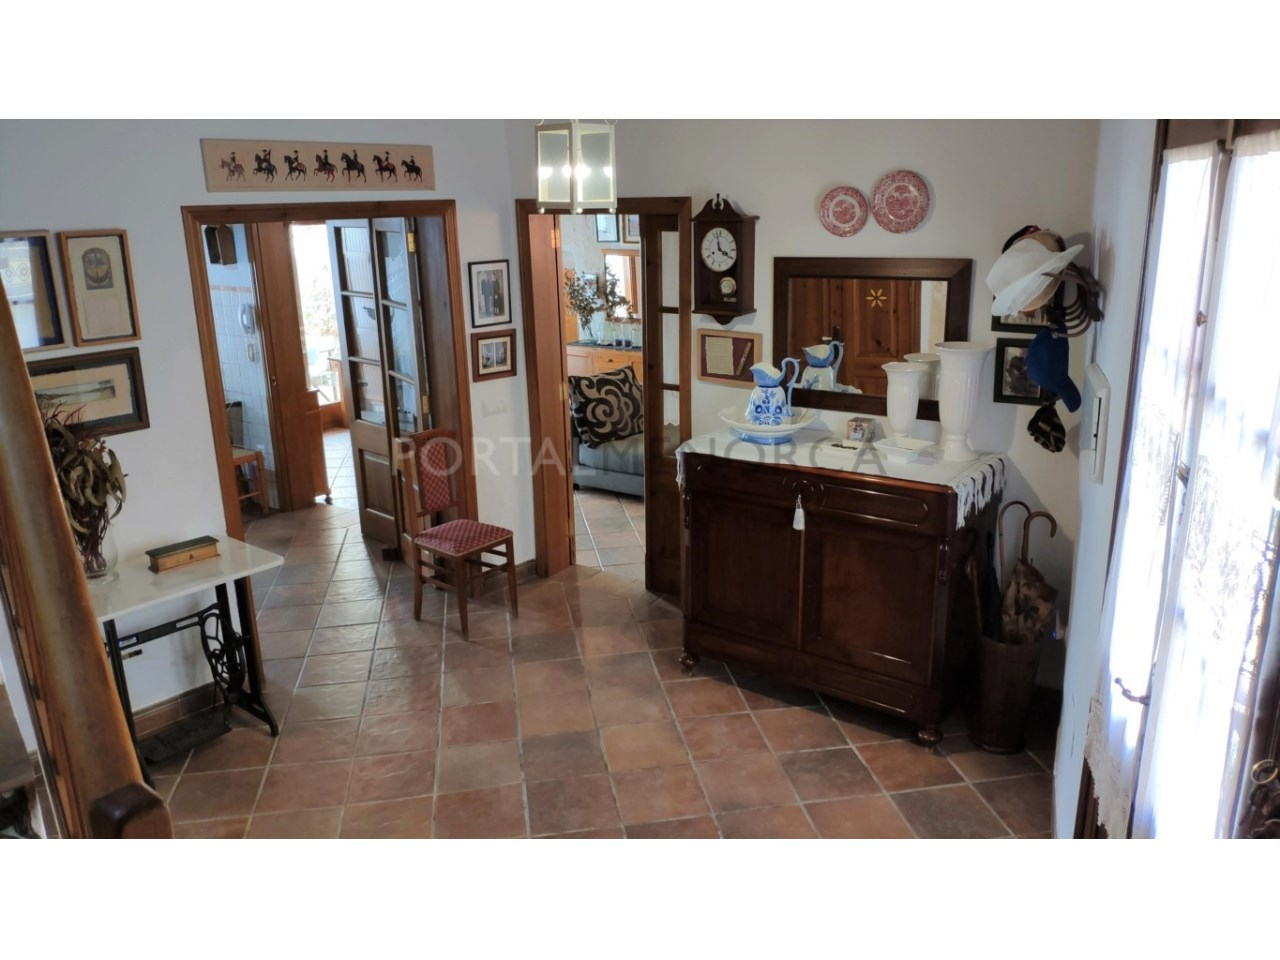 House for sale in the old town of Ciutadella-Hall